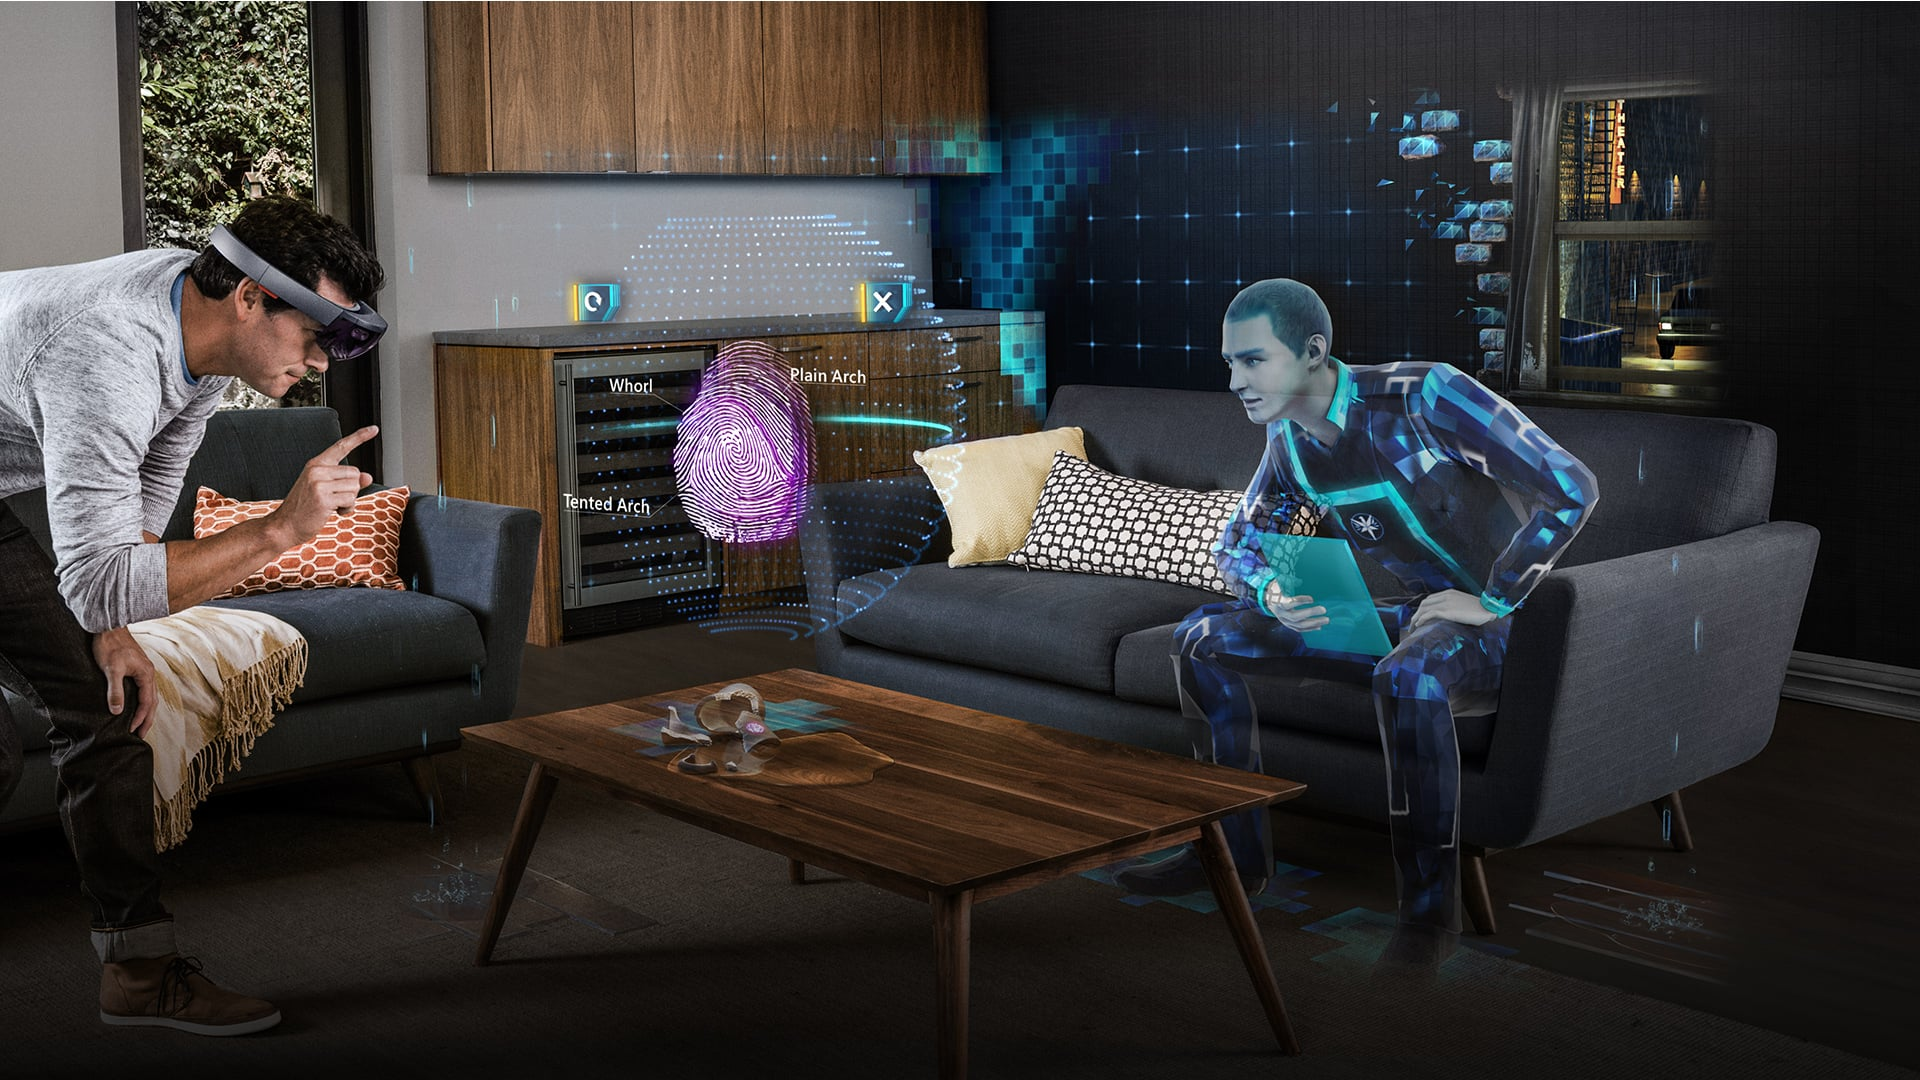 Man wearing HoloLens, analyzing a holographic fingerprint floating on a coffee table as a holographic colleague, sitting on couch, looks on